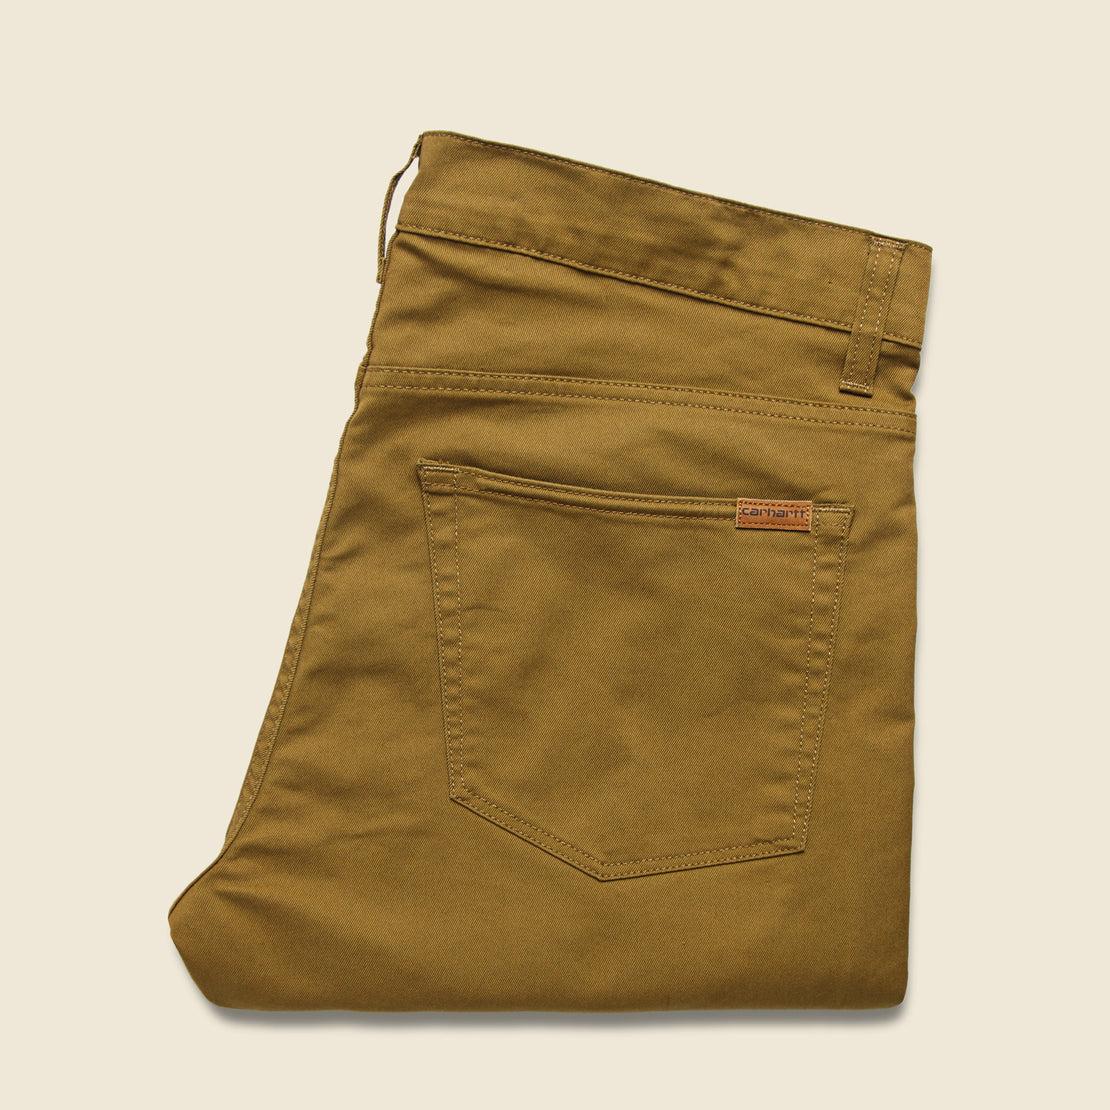 Vicious Pant - Hamilton Brown - Carhartt WIP - STAG Provisions - Pants - Twill